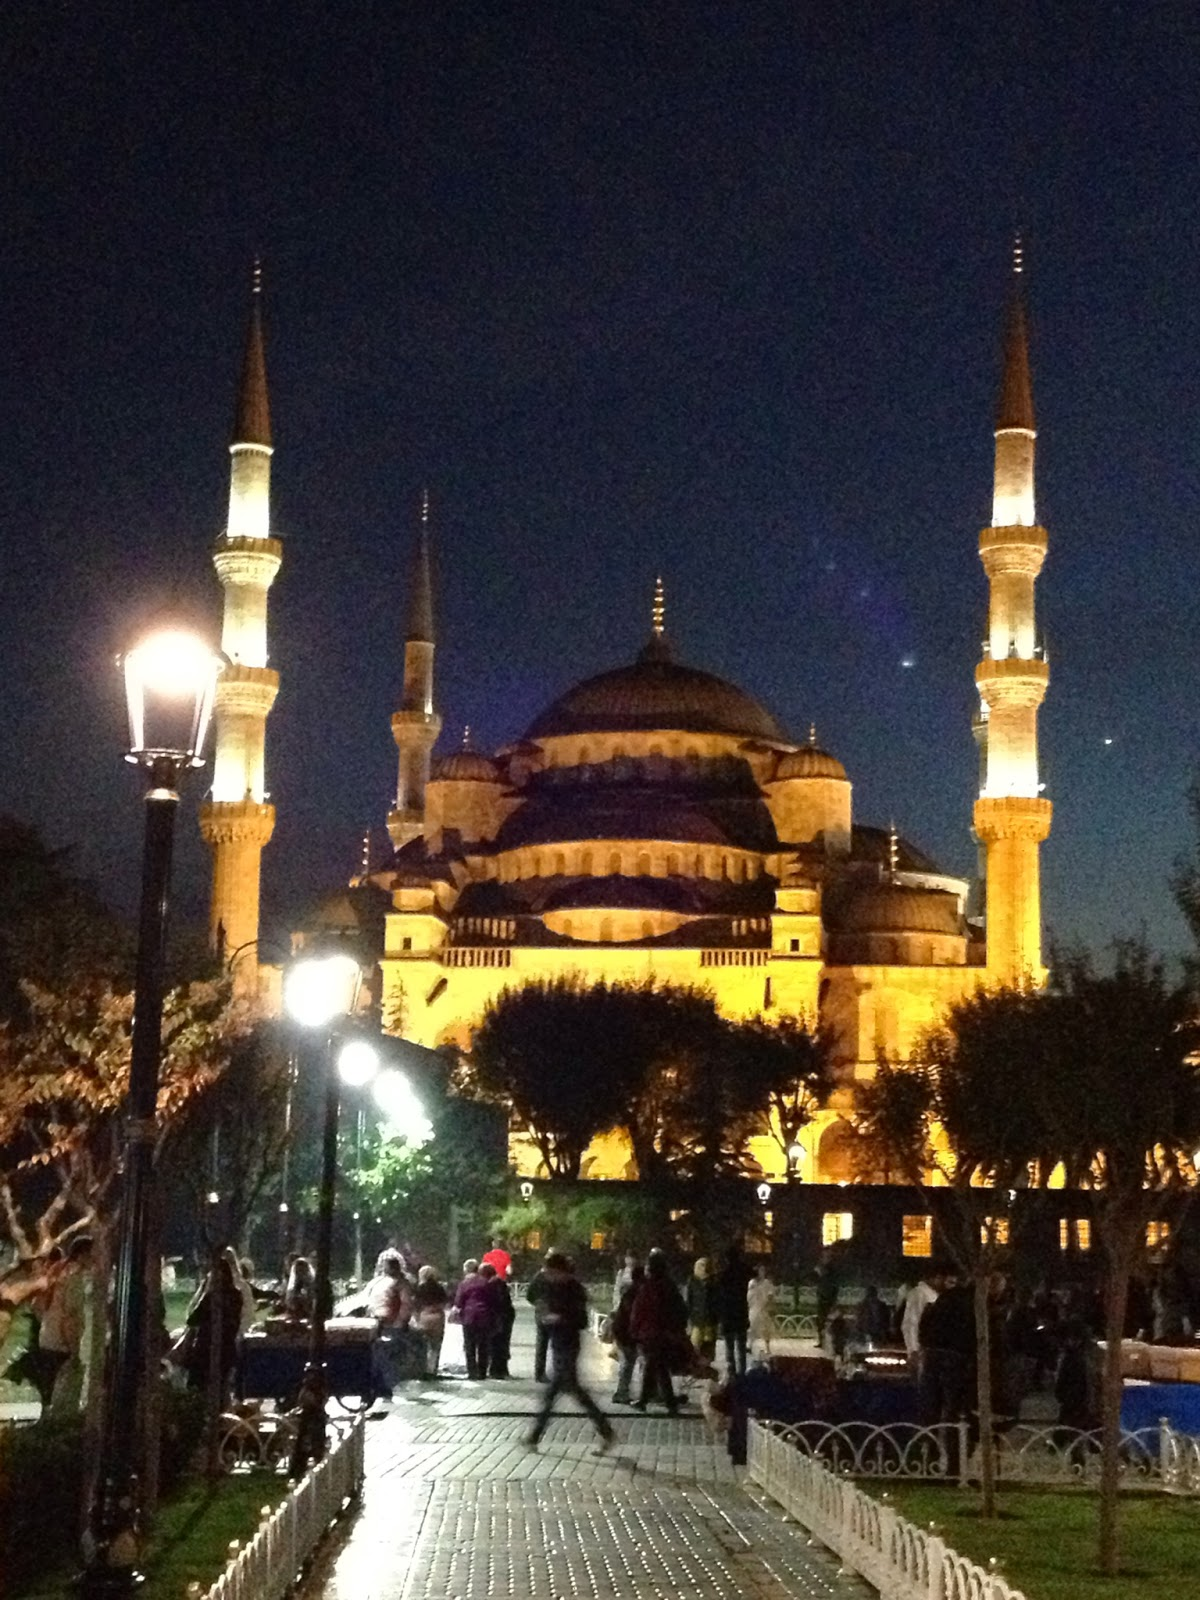 Istanbul - The Blue Mosque at night is really beautiful